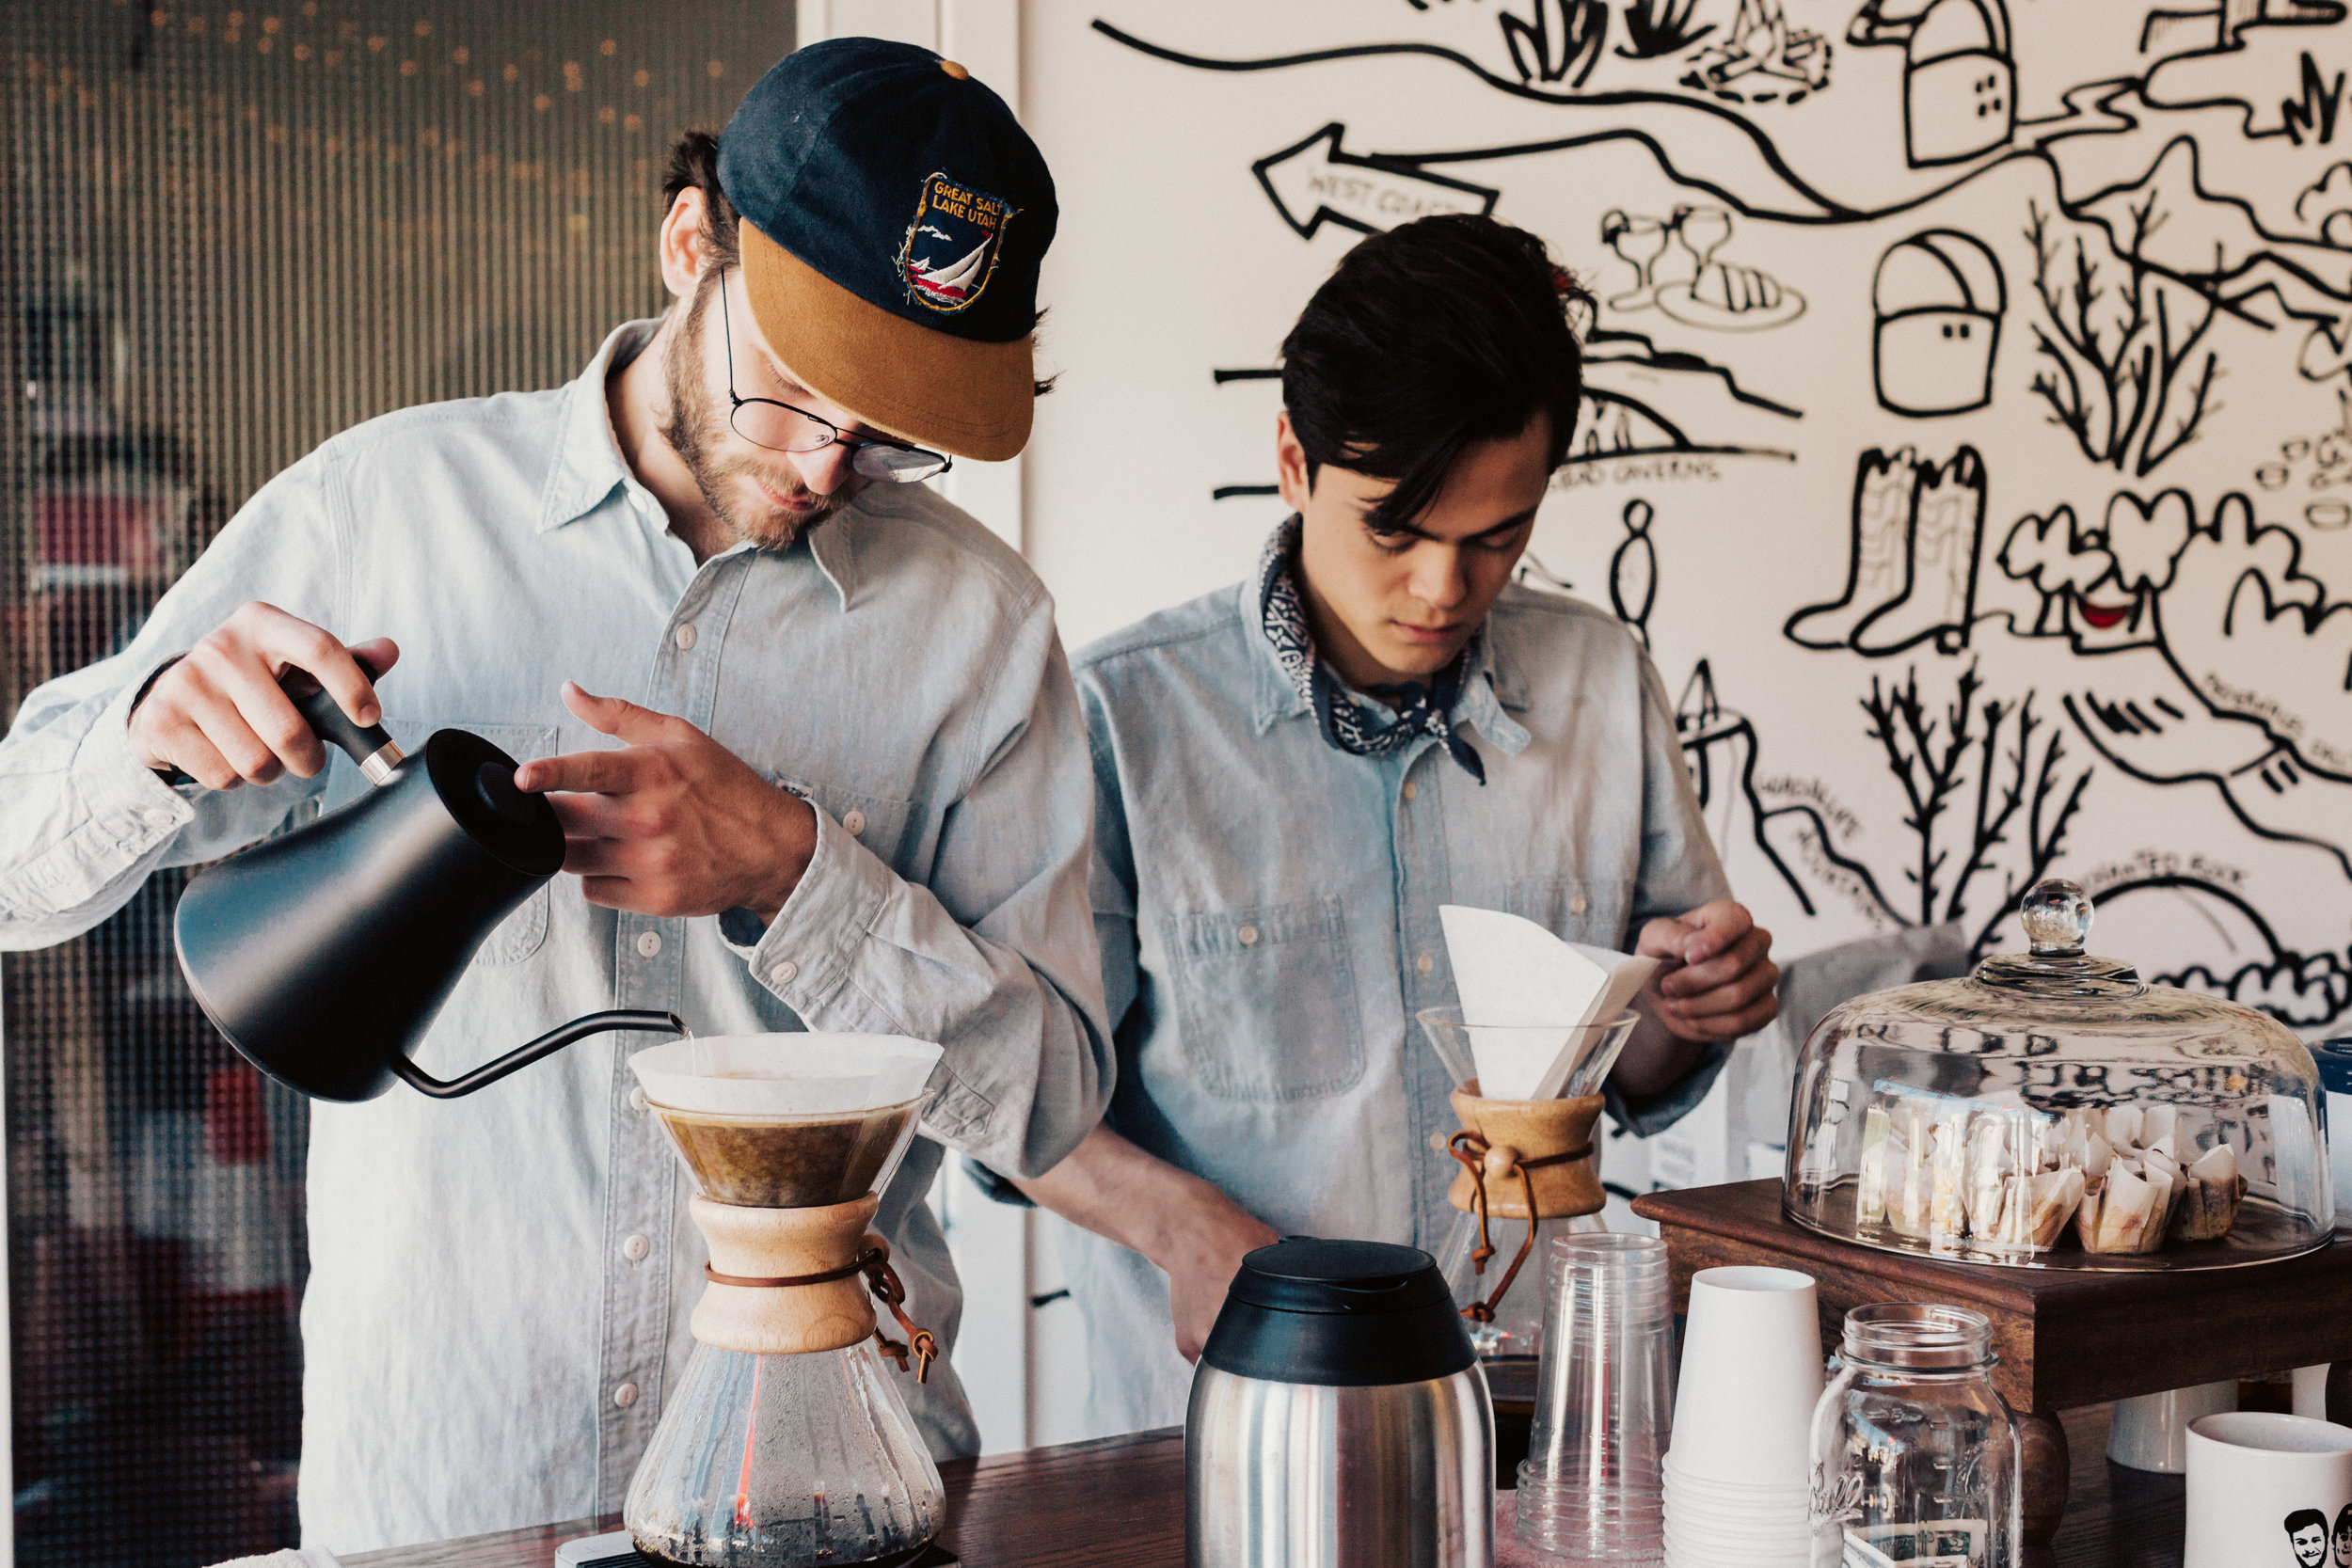 Be a good Neighbor - It's not just about the coffee.Our hearts are to bring people together and foster community. Neighbor Coffee exists to cultivate an approachable and inviting culture to the Austin coffee scene through unmatched catering and hospitality.